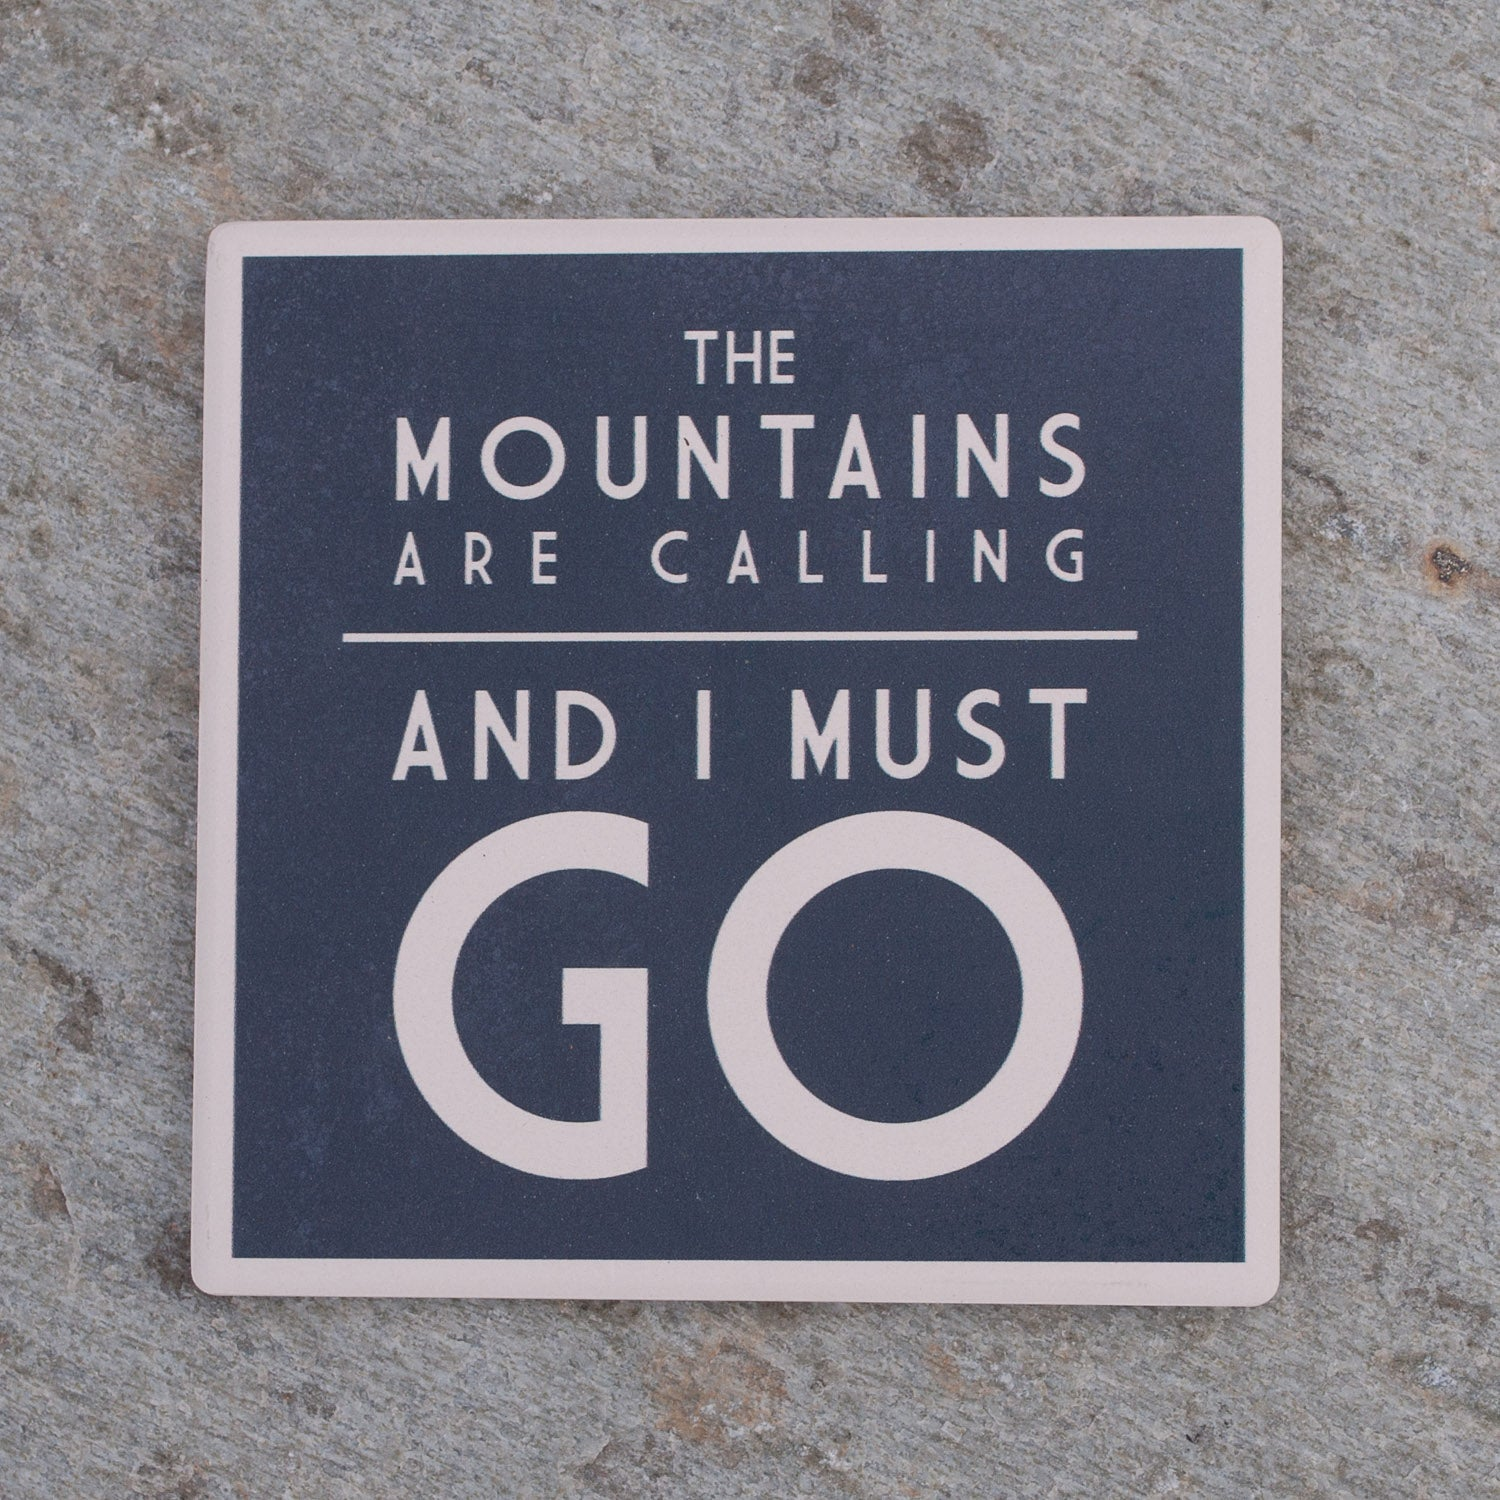 The Mountains are Calling and I Must Go - Coaster - Simply Bend Souvenirs